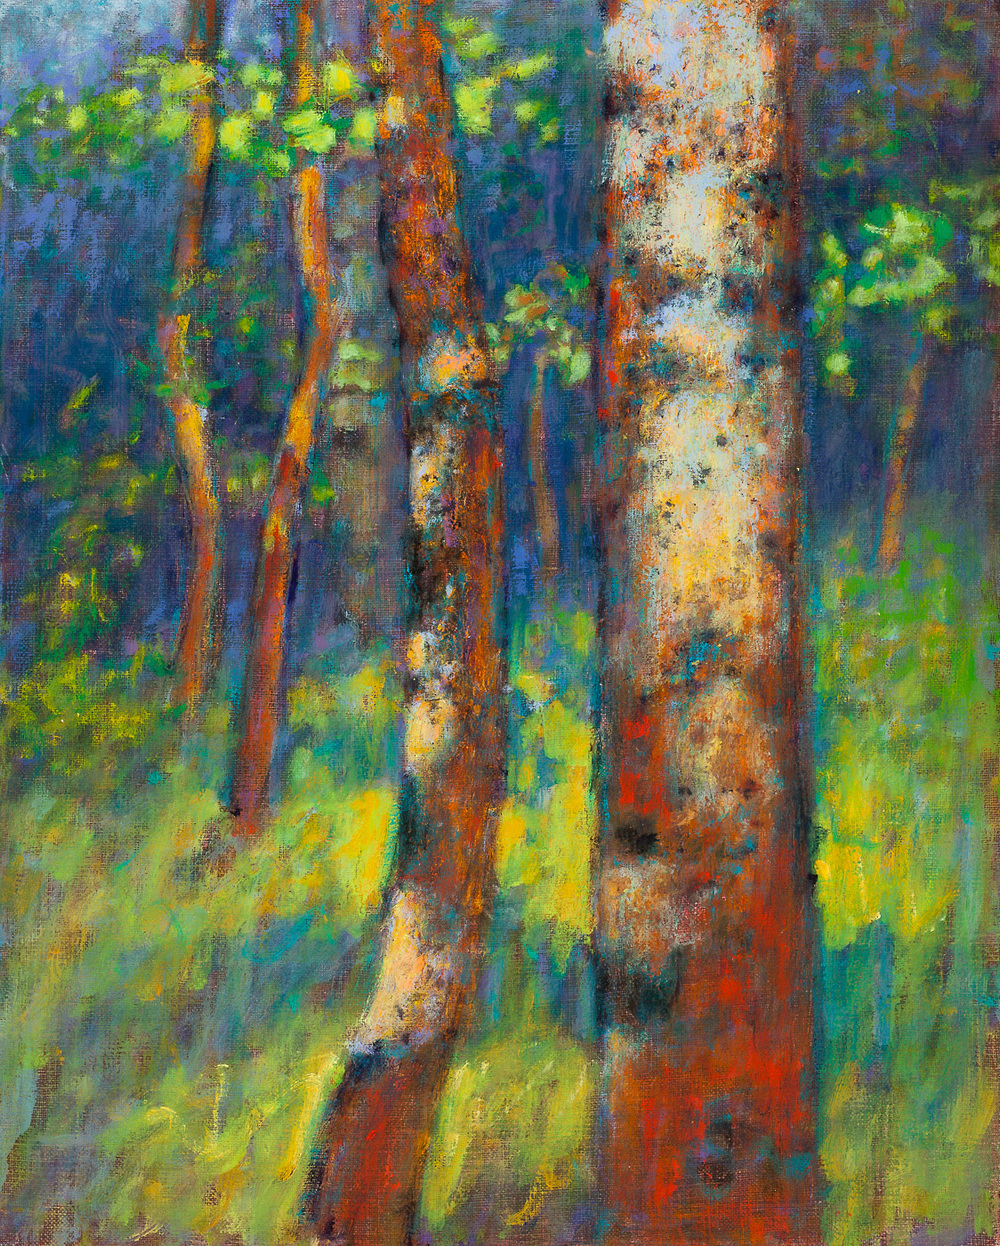 High Mountain Aspens | oil on linen | 15 x 12"